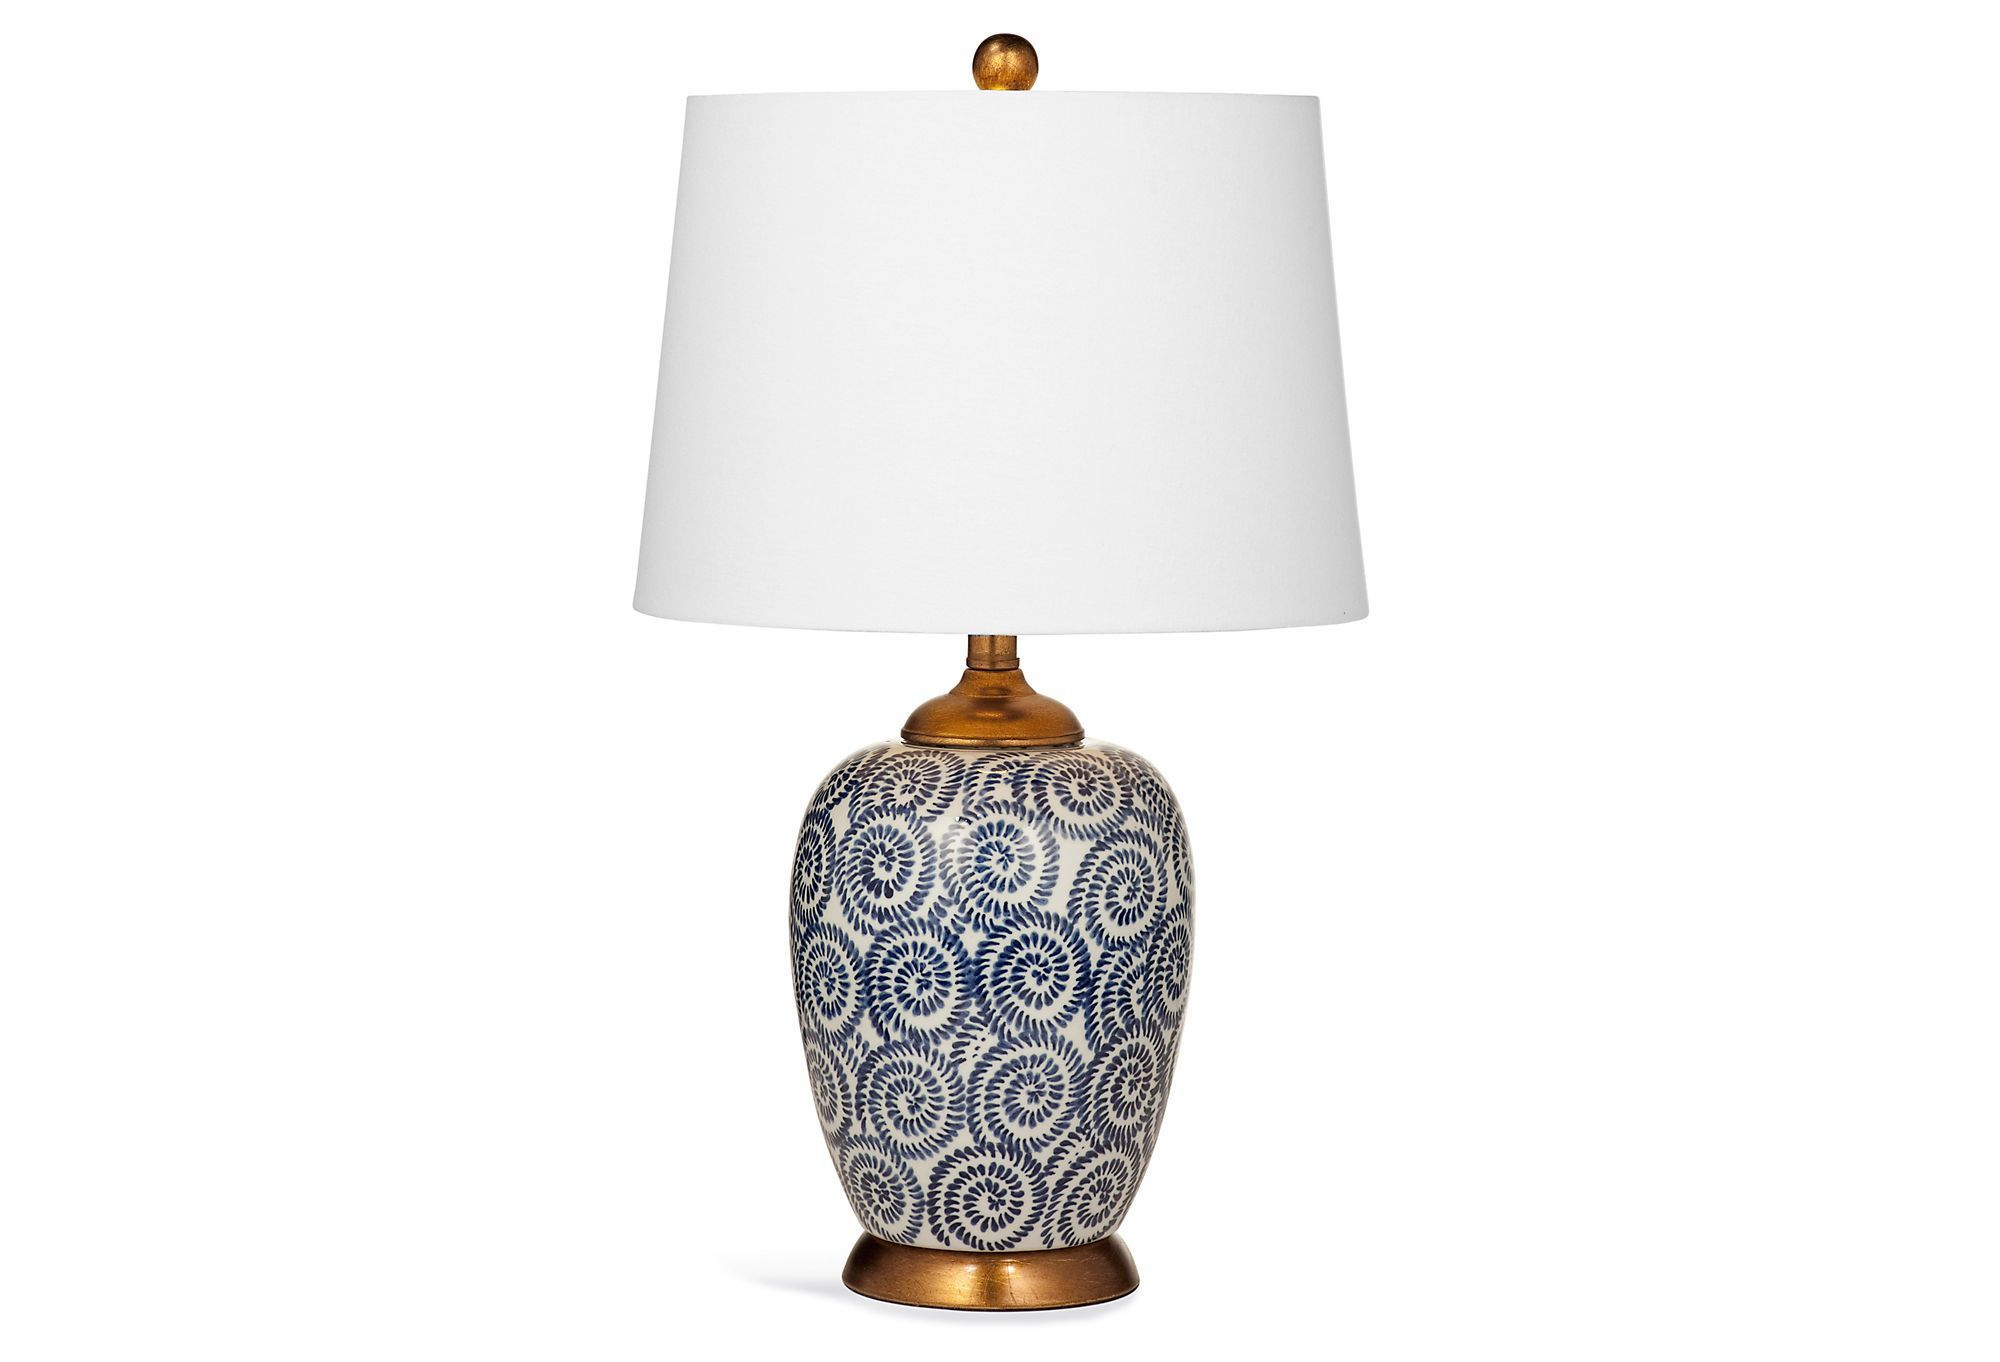 Mui Table Lamp Navy White Lighting By Bassett One Kings Lane Small Lamp Shades Antique Lamp Shades Lamp